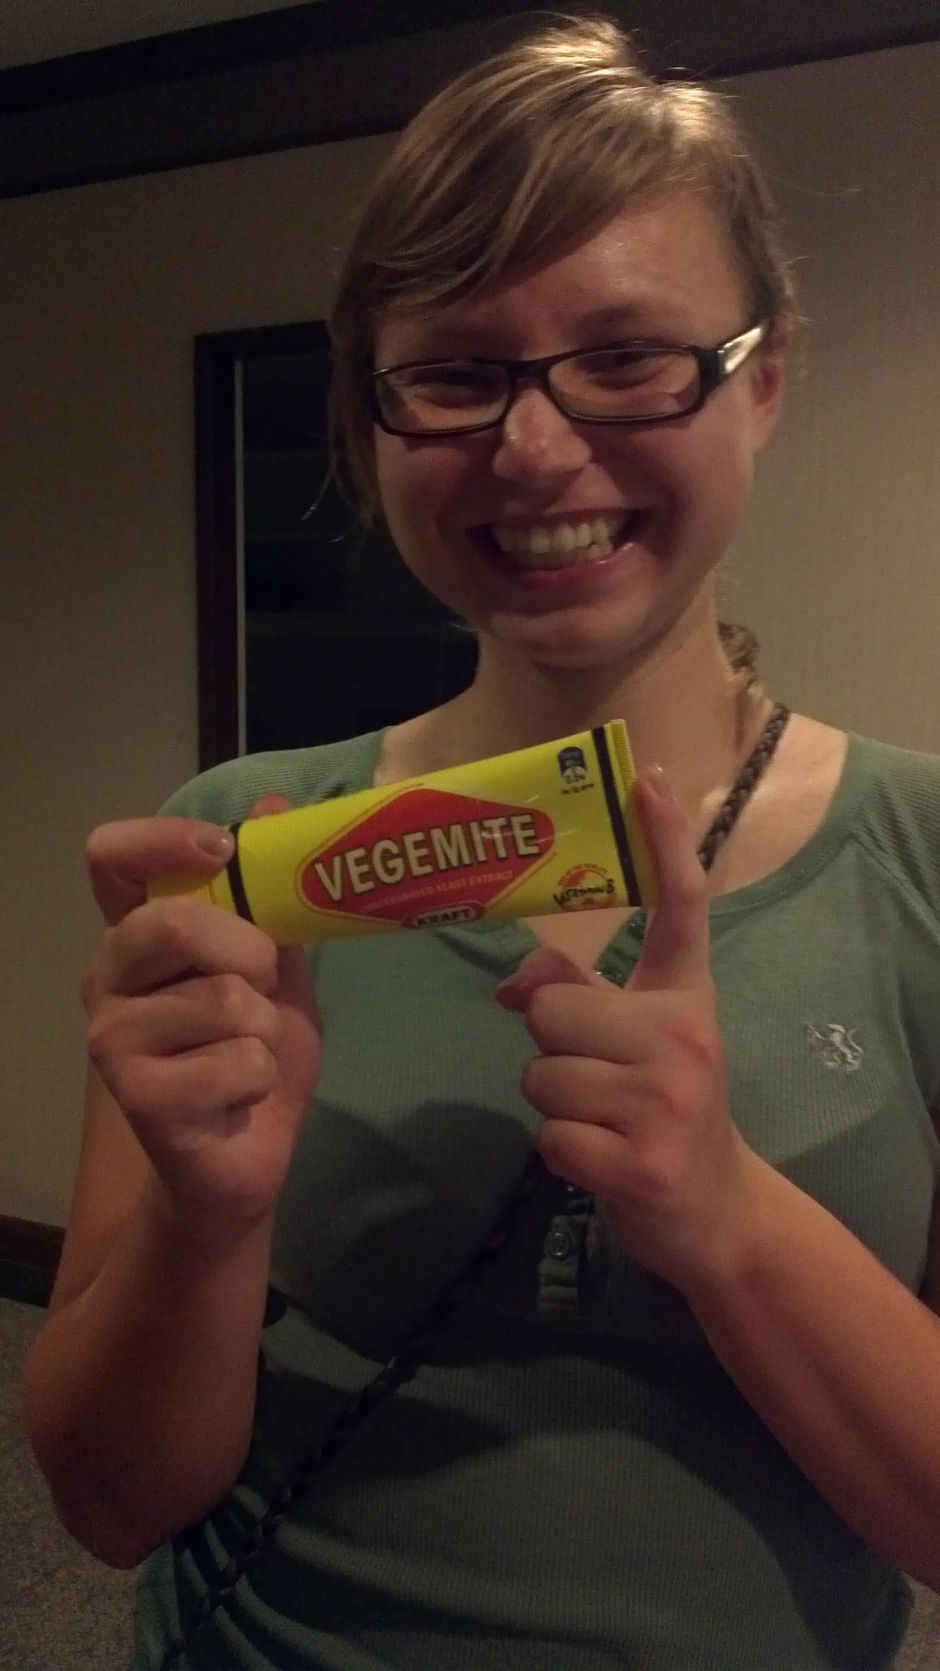 Another way He loved me today... :) #vegemite #surprise